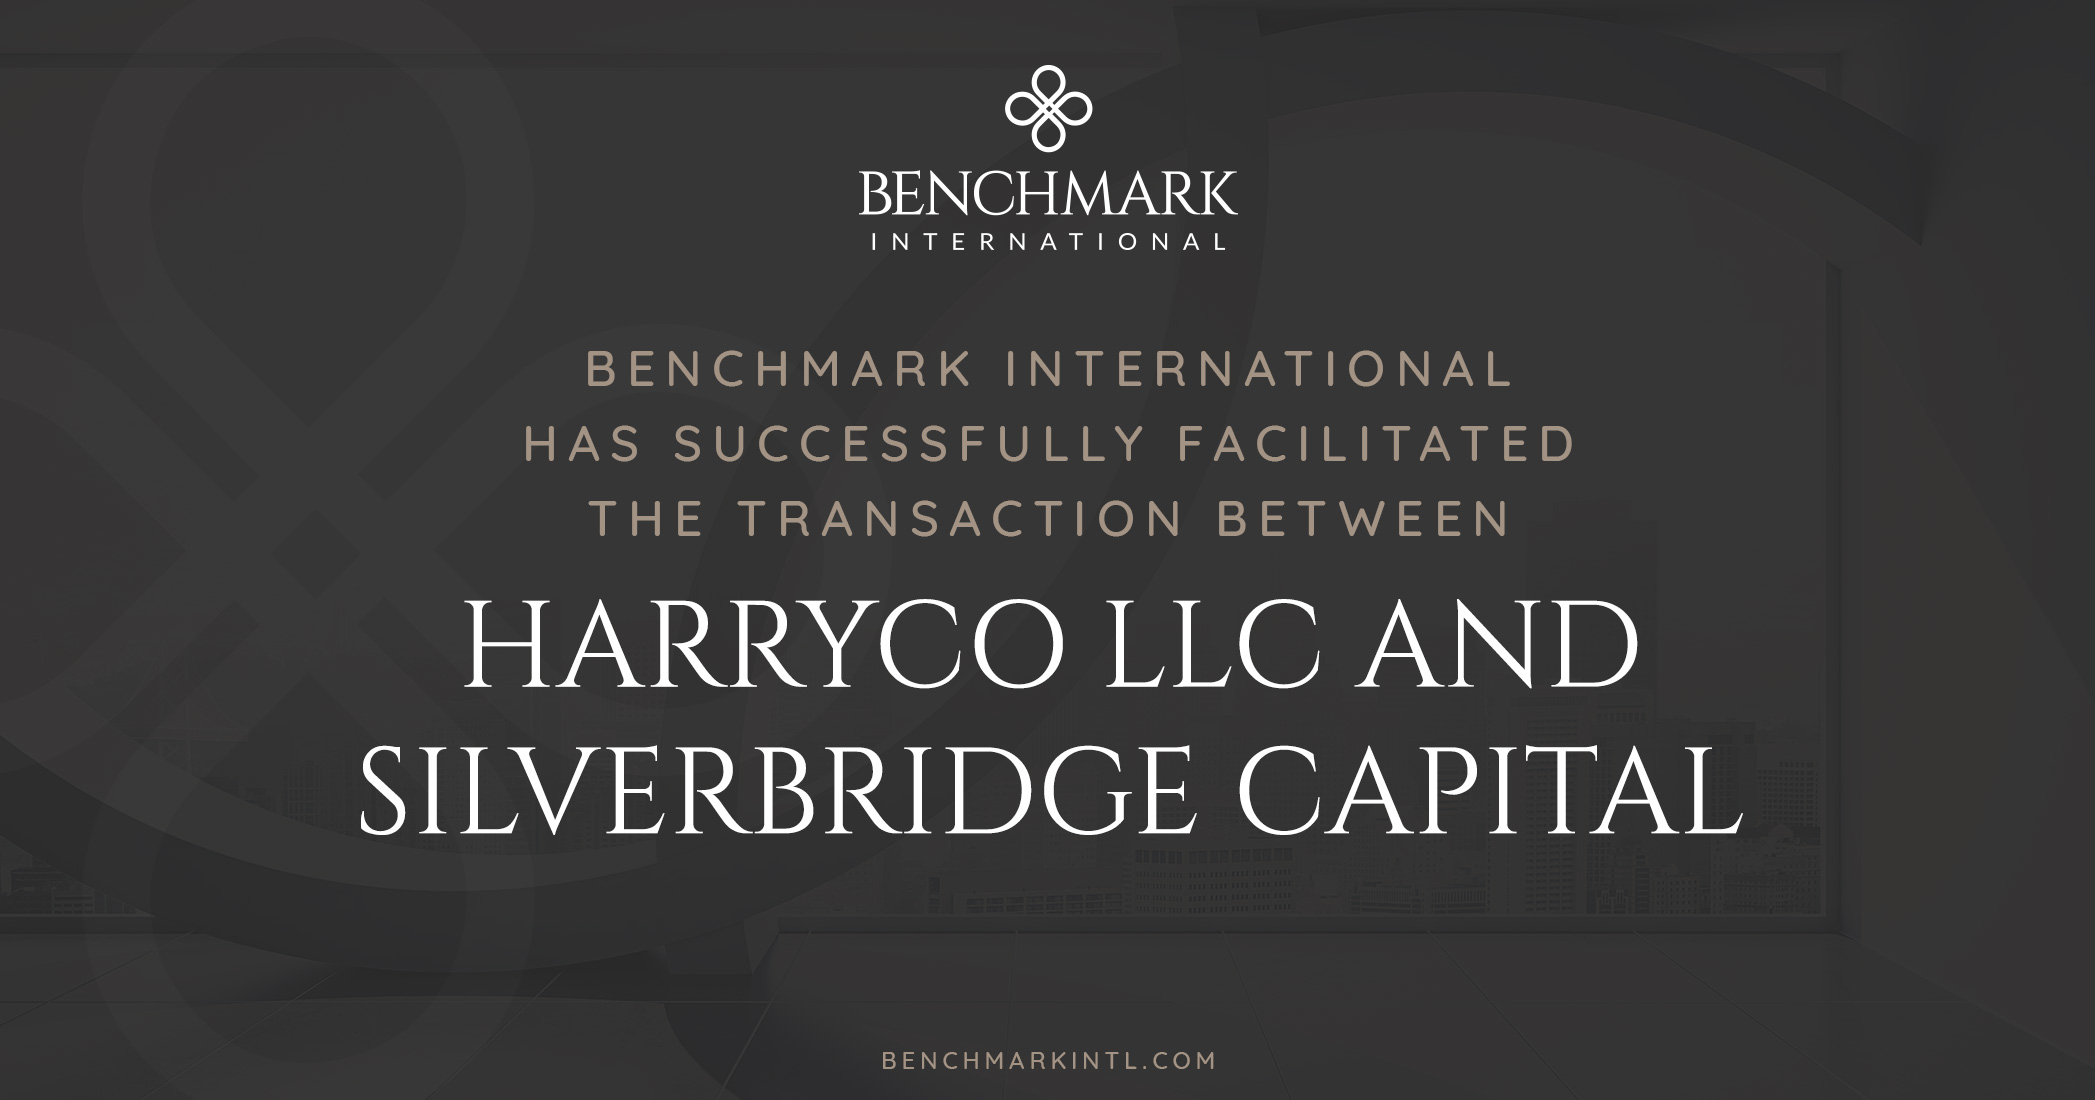 Benchmark International Successfully Facilitated the Transaction Between Harryco LLC and Silverbridge Capital